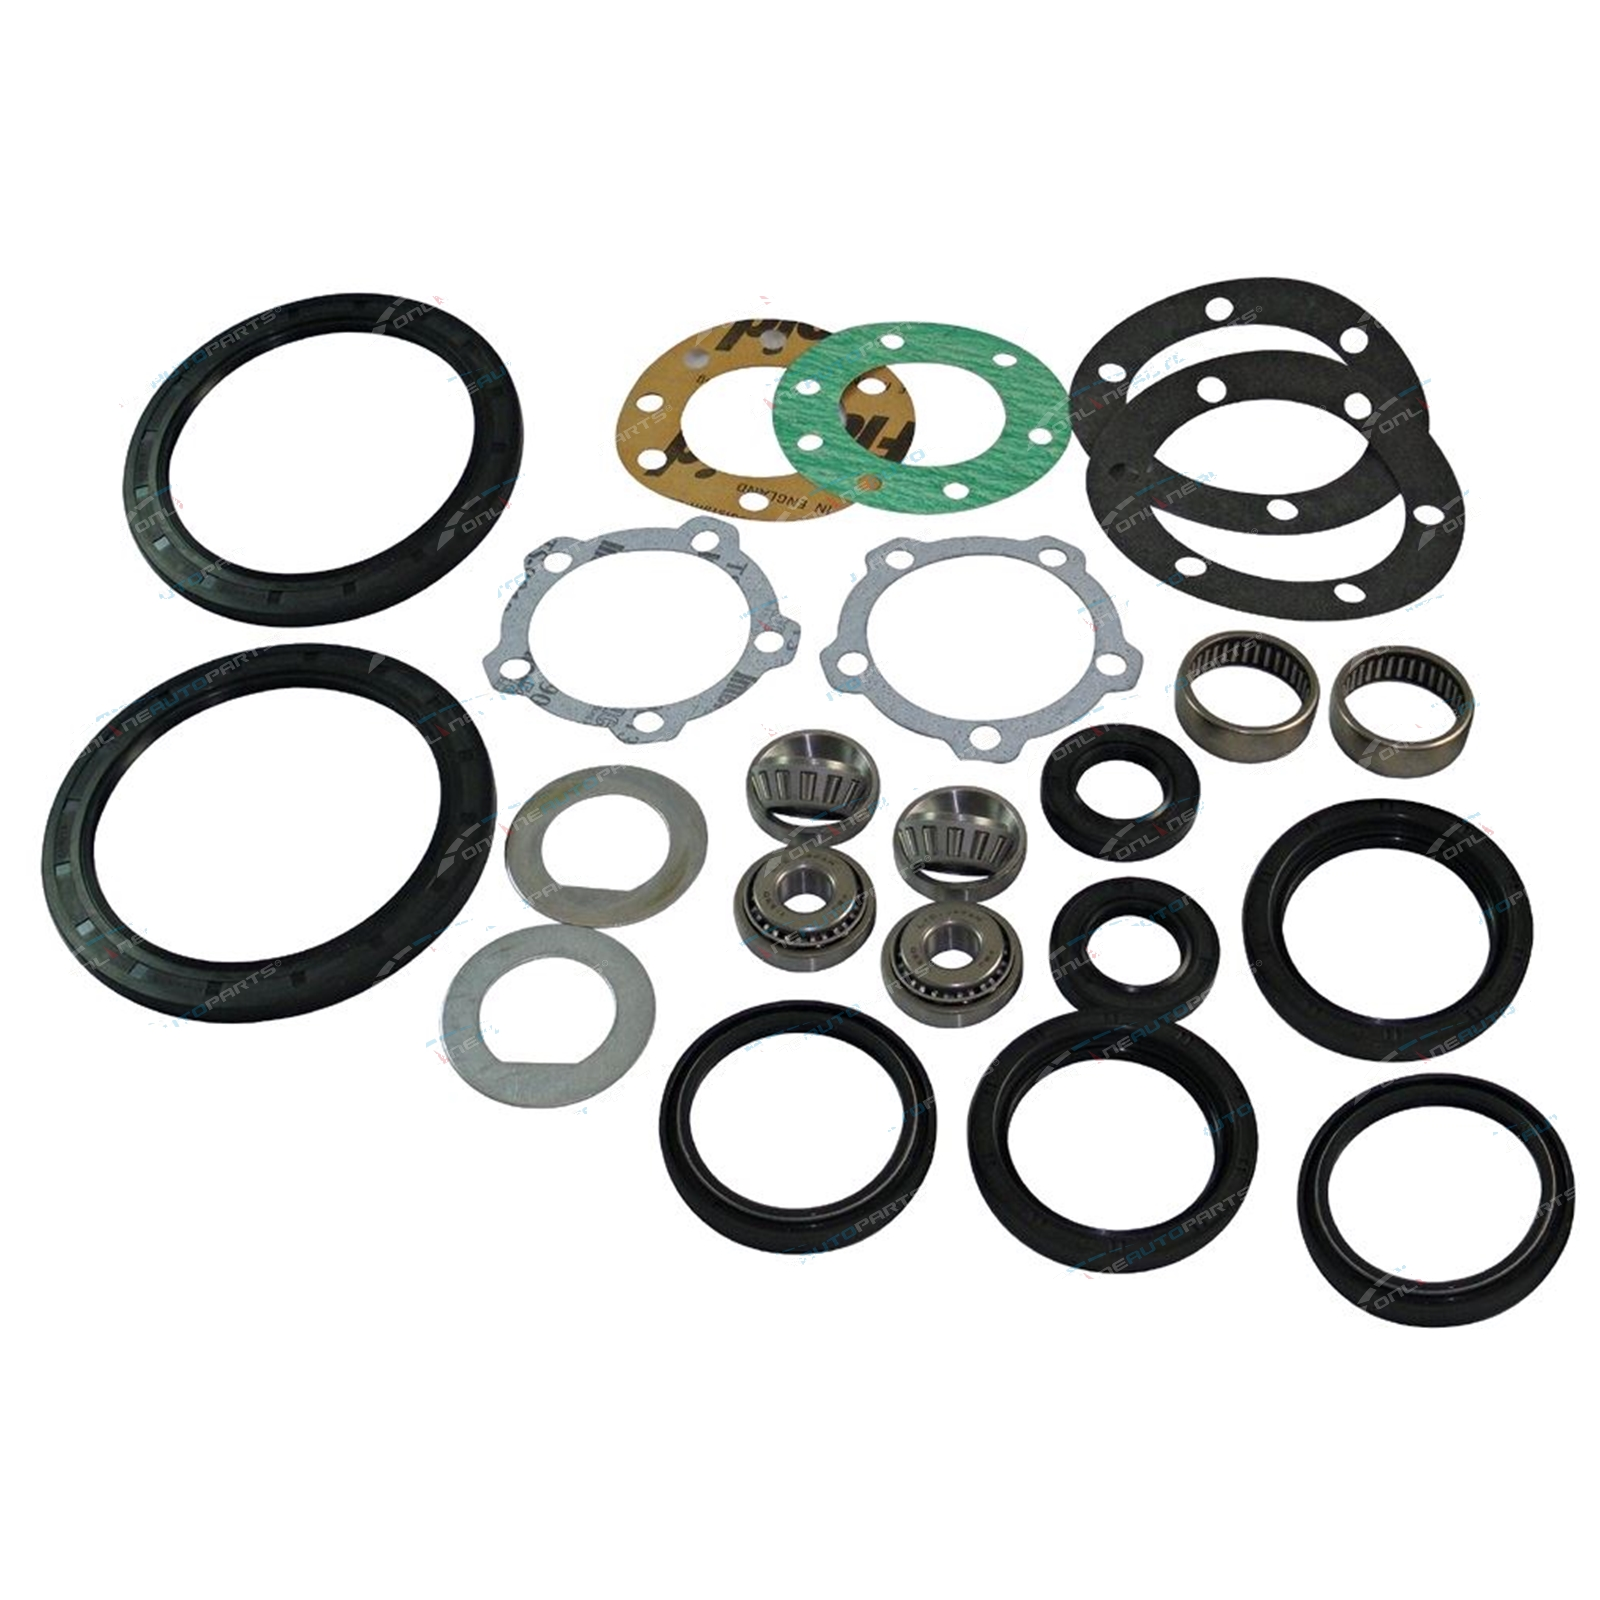 Landrover One Ten 110 5/1985-94 Swivel Hub Rebuild Kit